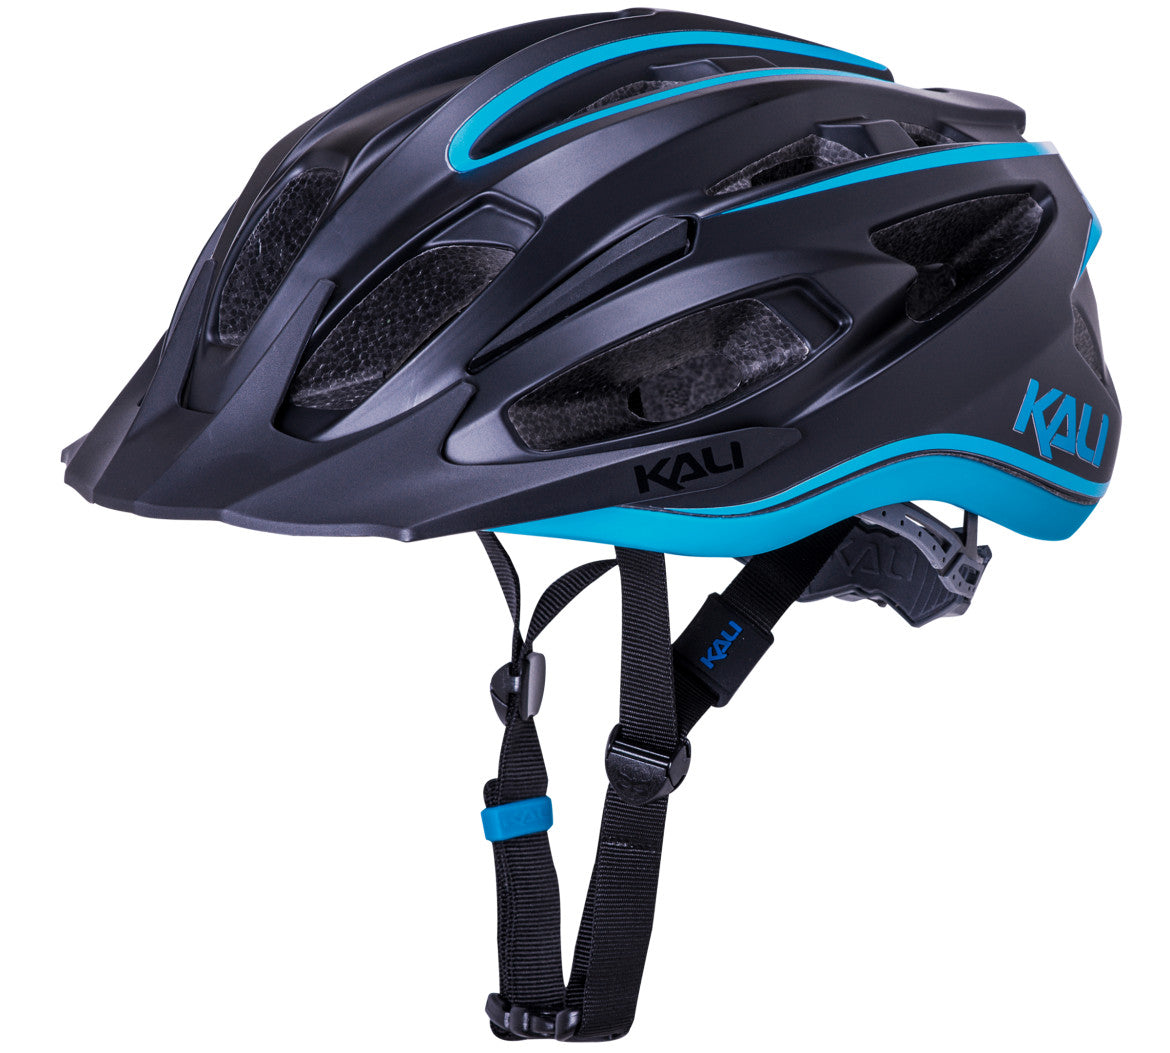 Alchemy Solar Black/Blue by Kali Protectives